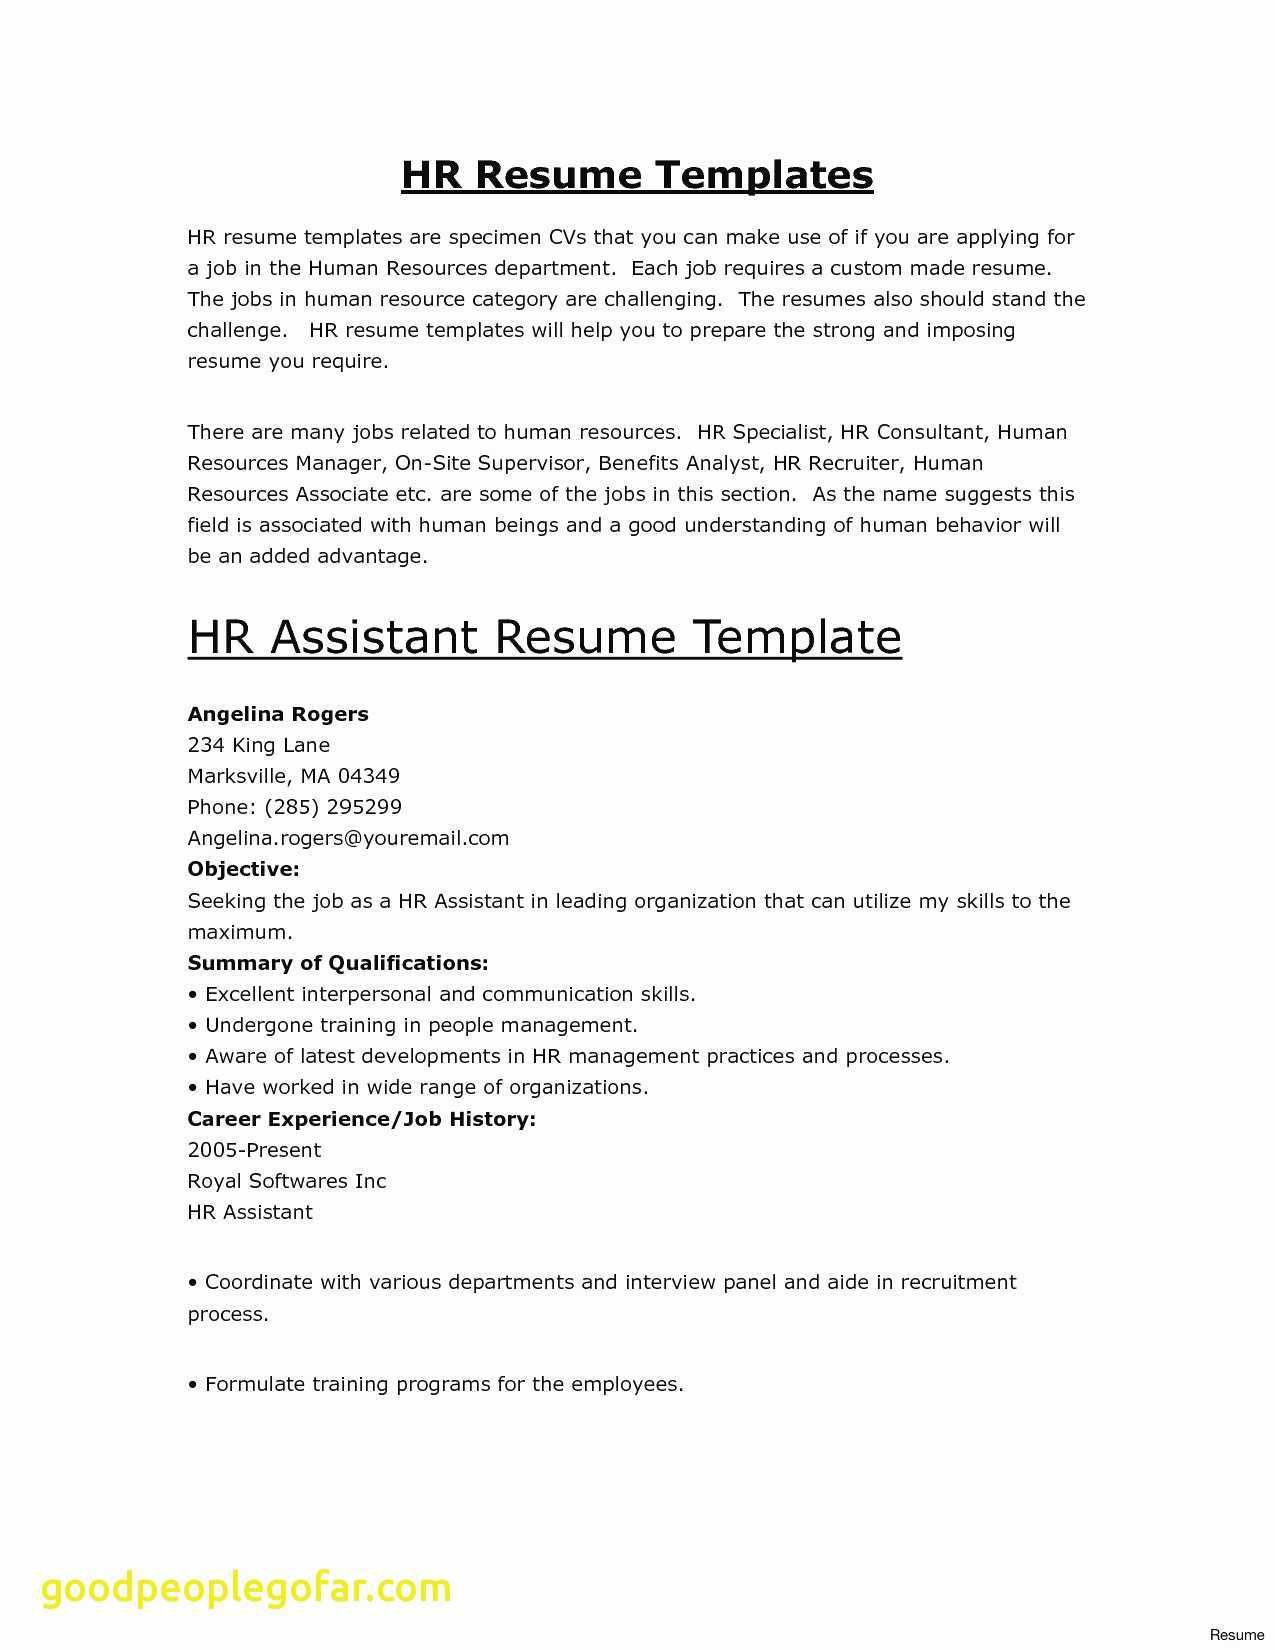 Hr Recruiter Resume Pindwi Susanto On Business Document  Pinterest  Business And .